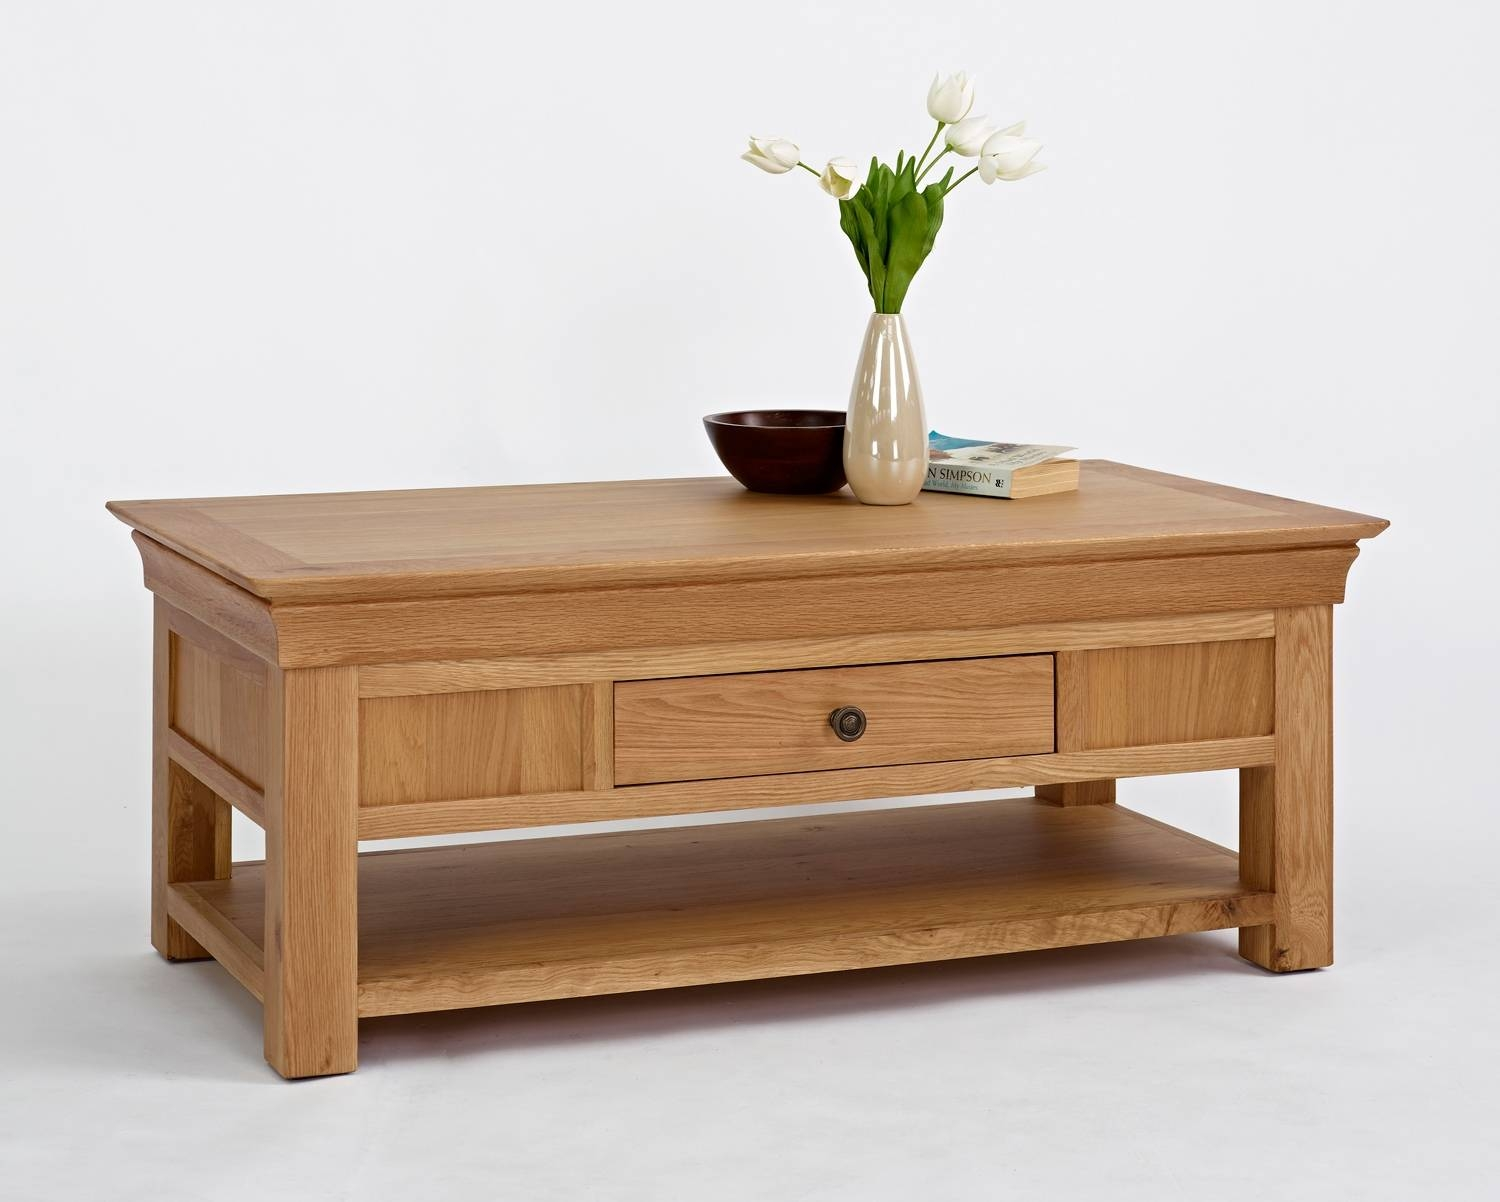 French Modern Oak Coffee Table With Drawer | Hampshire Furniture regarding Large Oak Coffee Tables (Image 5 of 15)